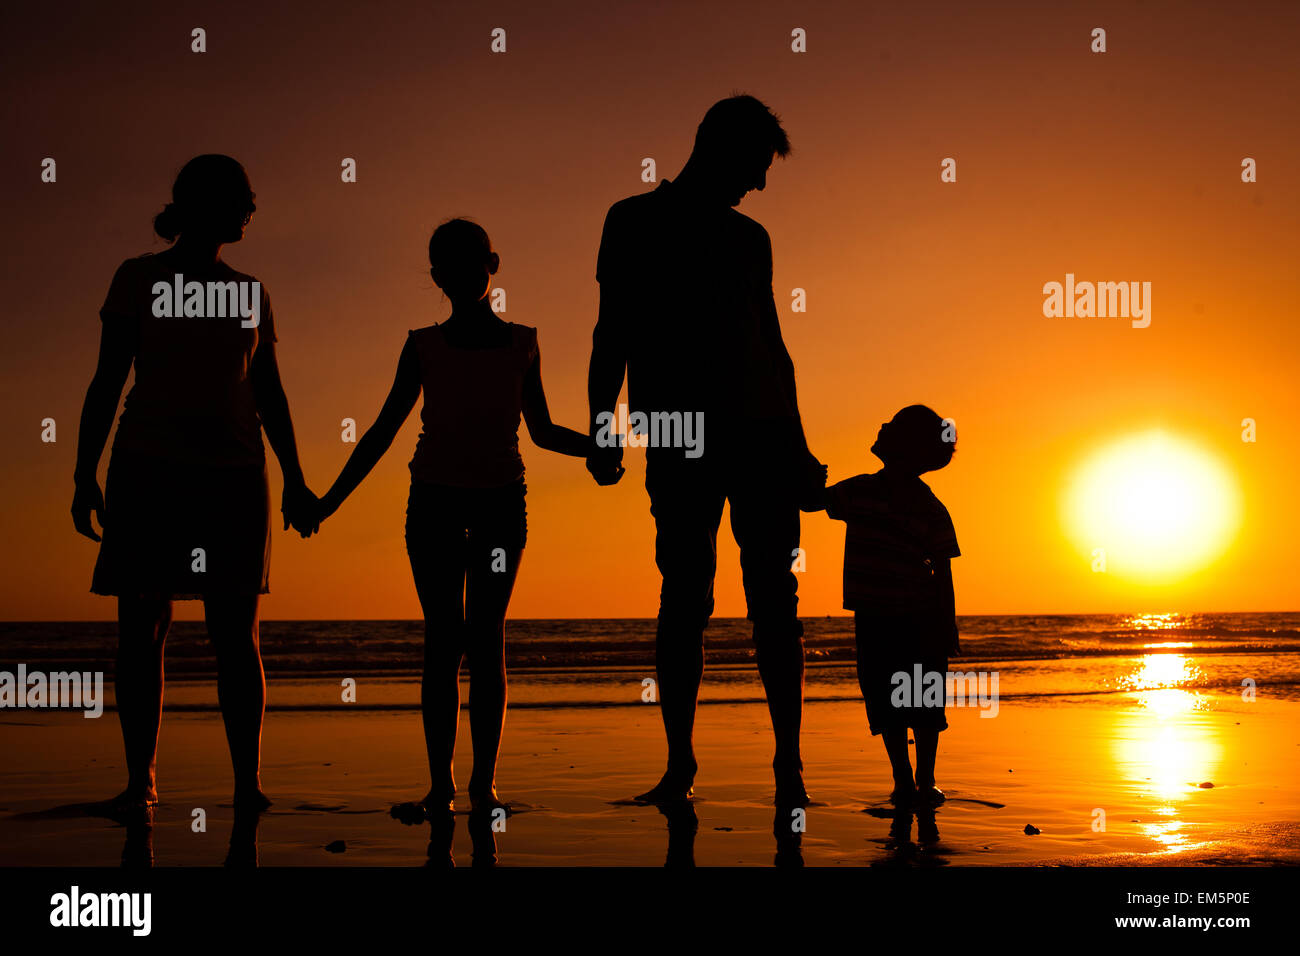 Silhouette of family - Stock Image